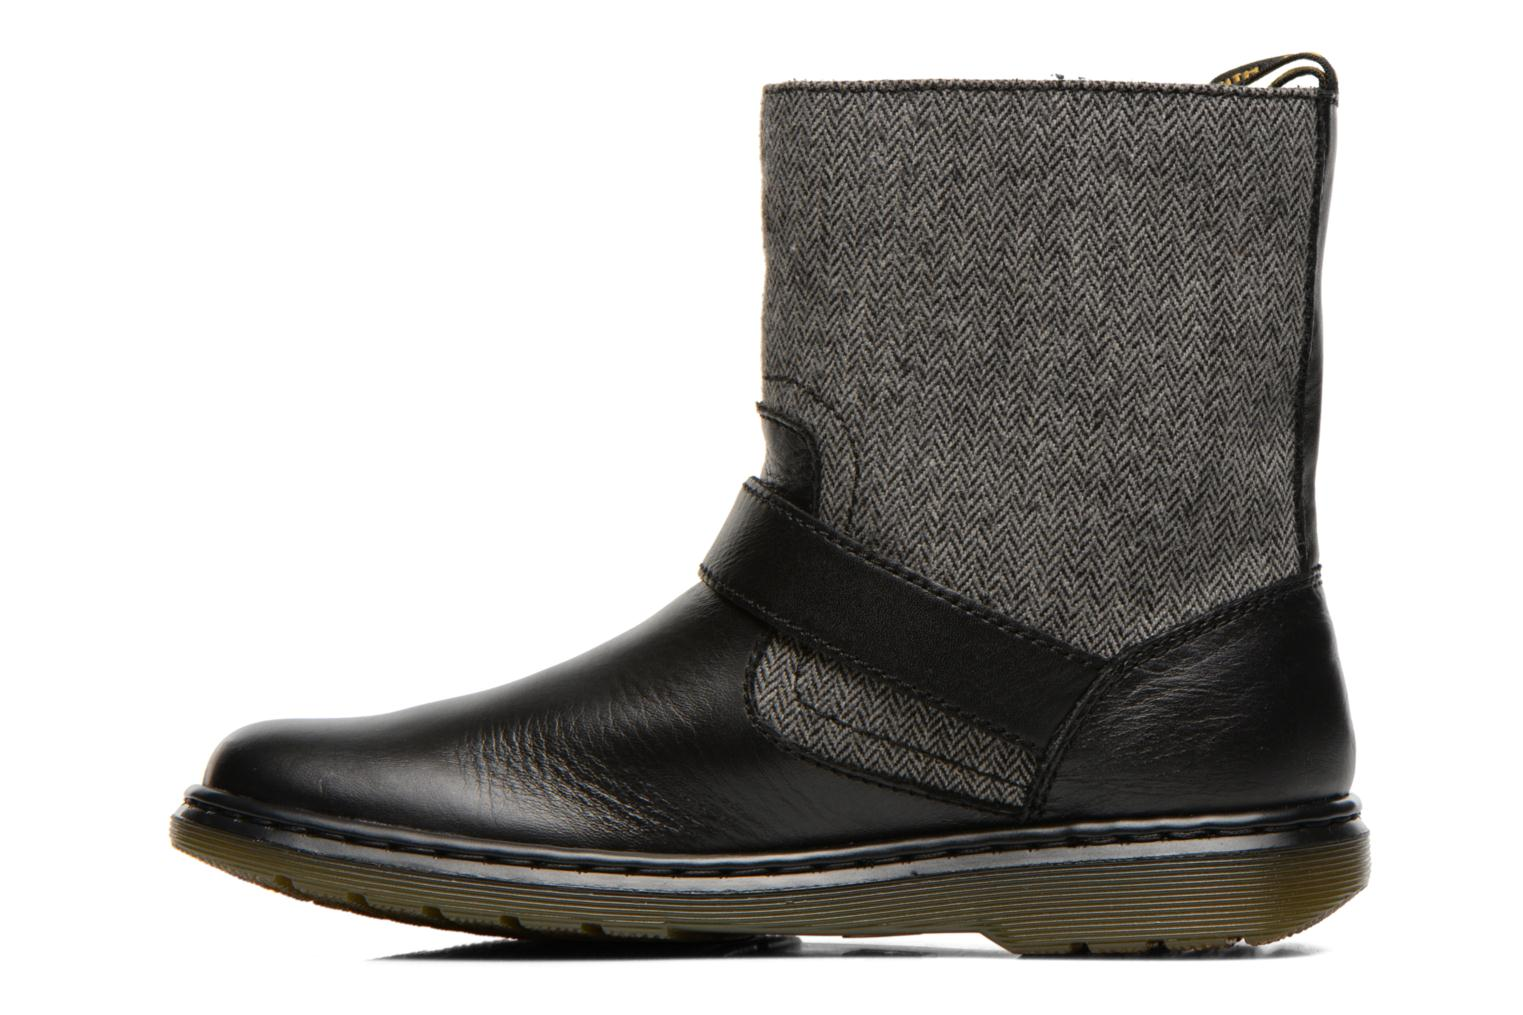 Gayle Black Danio / Grey 19 Tweed Check